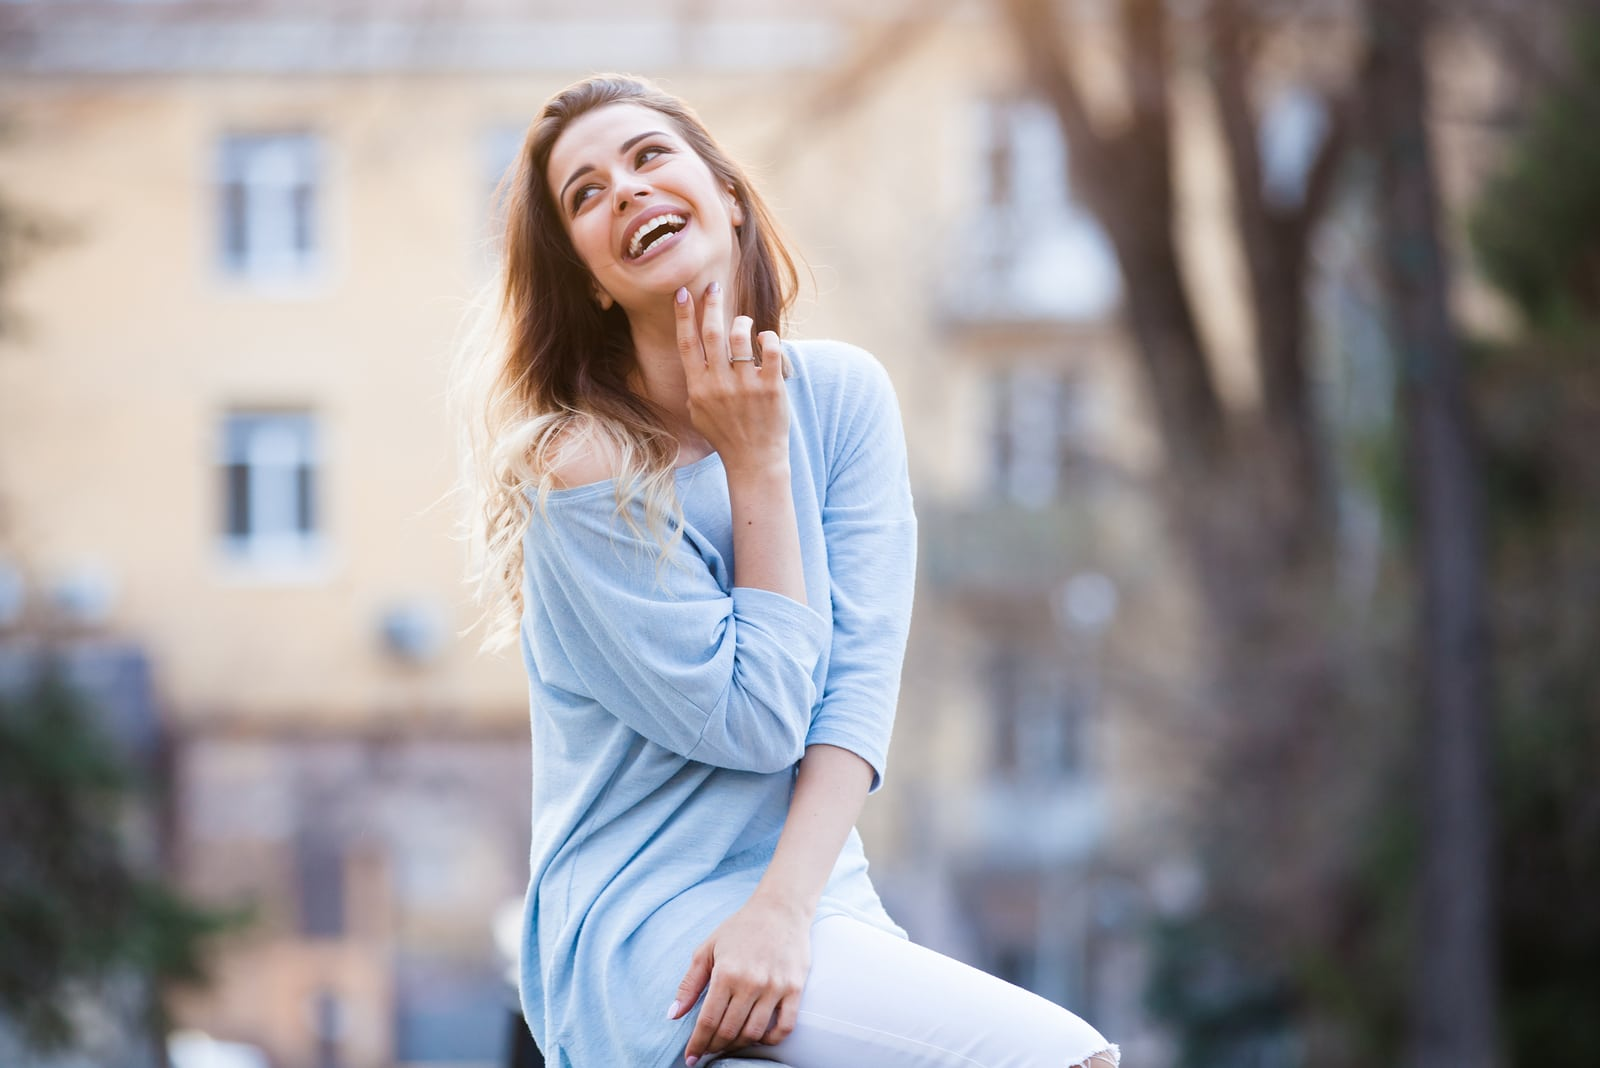 outside on the fence sits a smiling woman